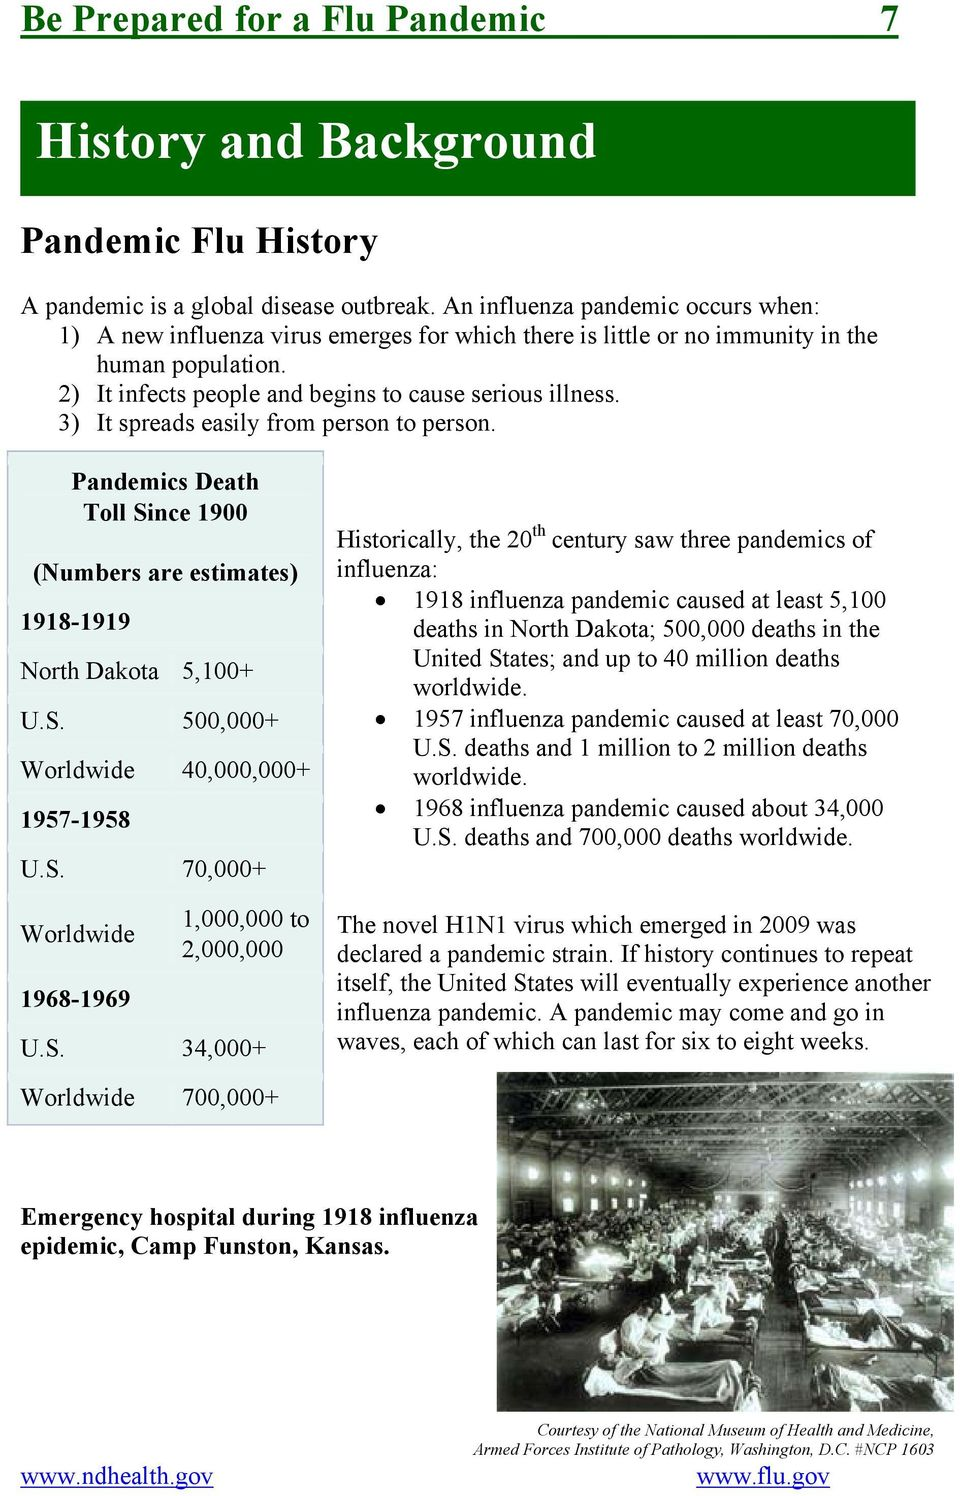 3) It spreads easily from person to person. Pandemics Death Toll Since 1900 (Numbers are estimates) 1918-1919 North Dakota 5,100+ U.S. 500,000+ Worldwide 40,000,000+ 1957-1958 U.S. 70,000+ Worldwide 1968-1969 1,000,000 to 2,000,000 U.